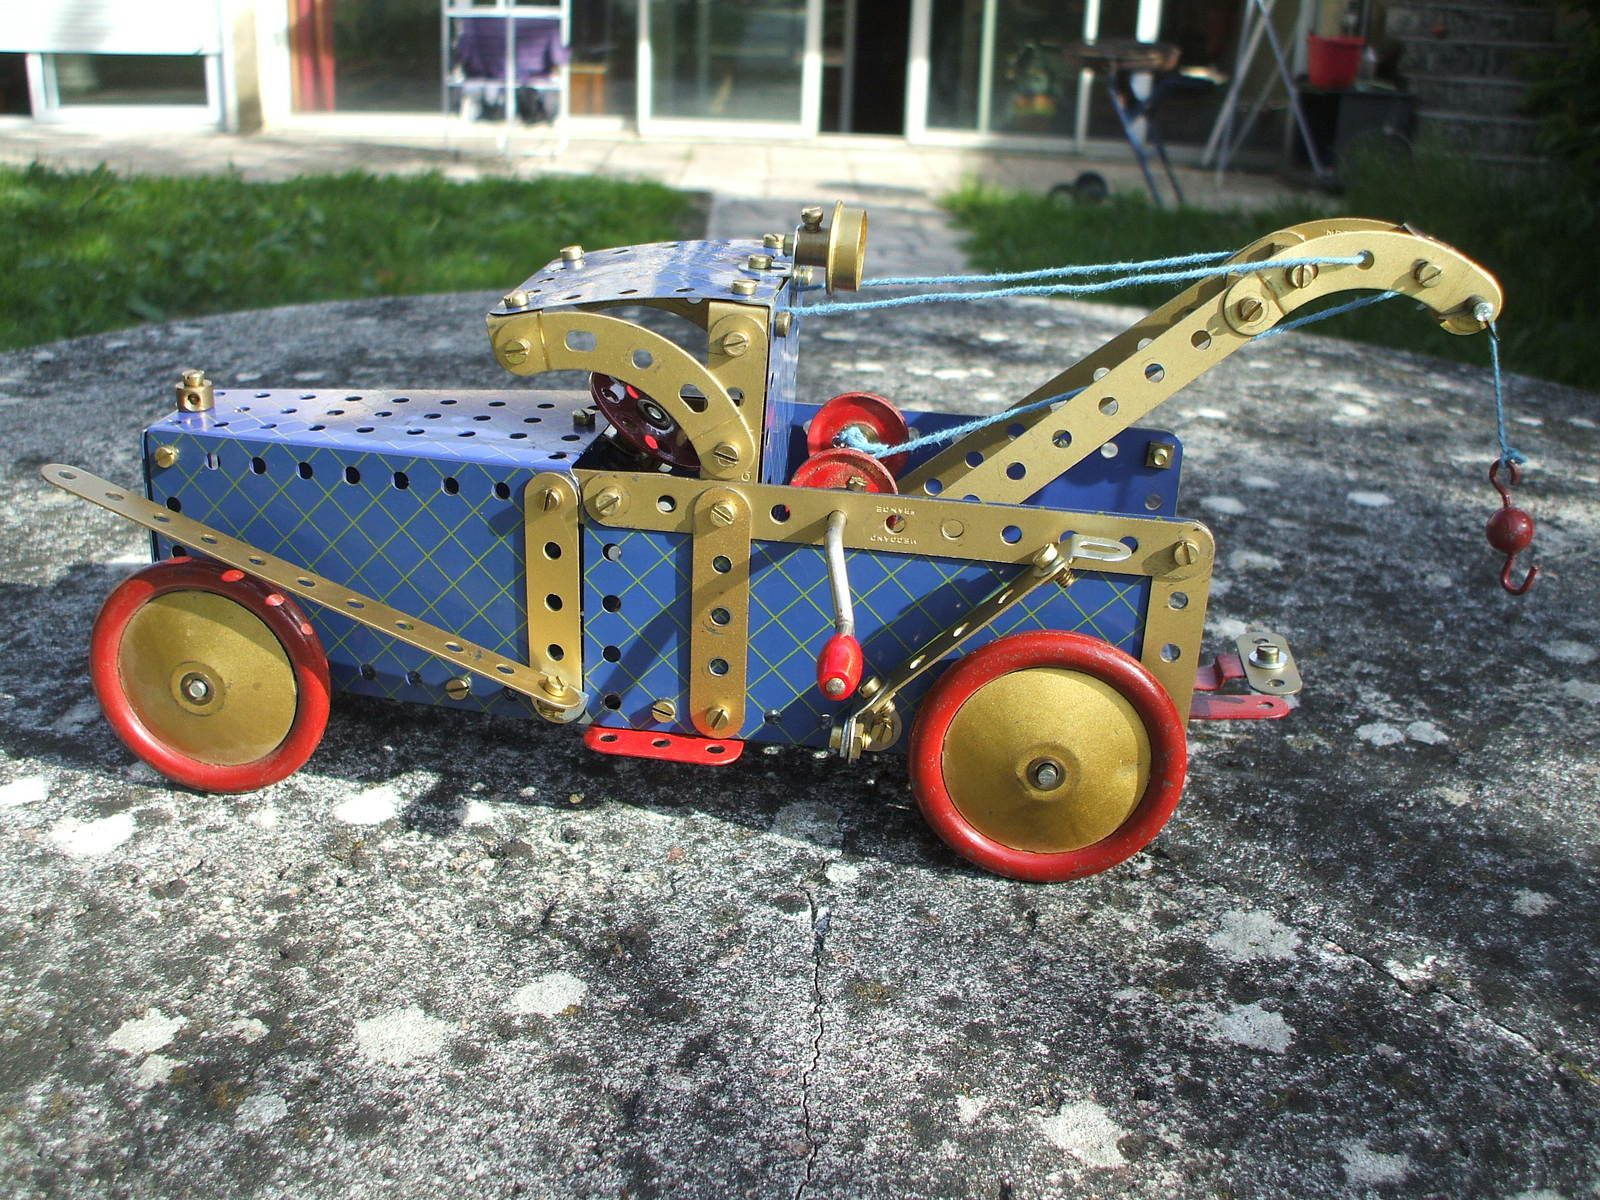 De Modèles Collection Eric Mes Blog Le D Meccano nPwX08kO